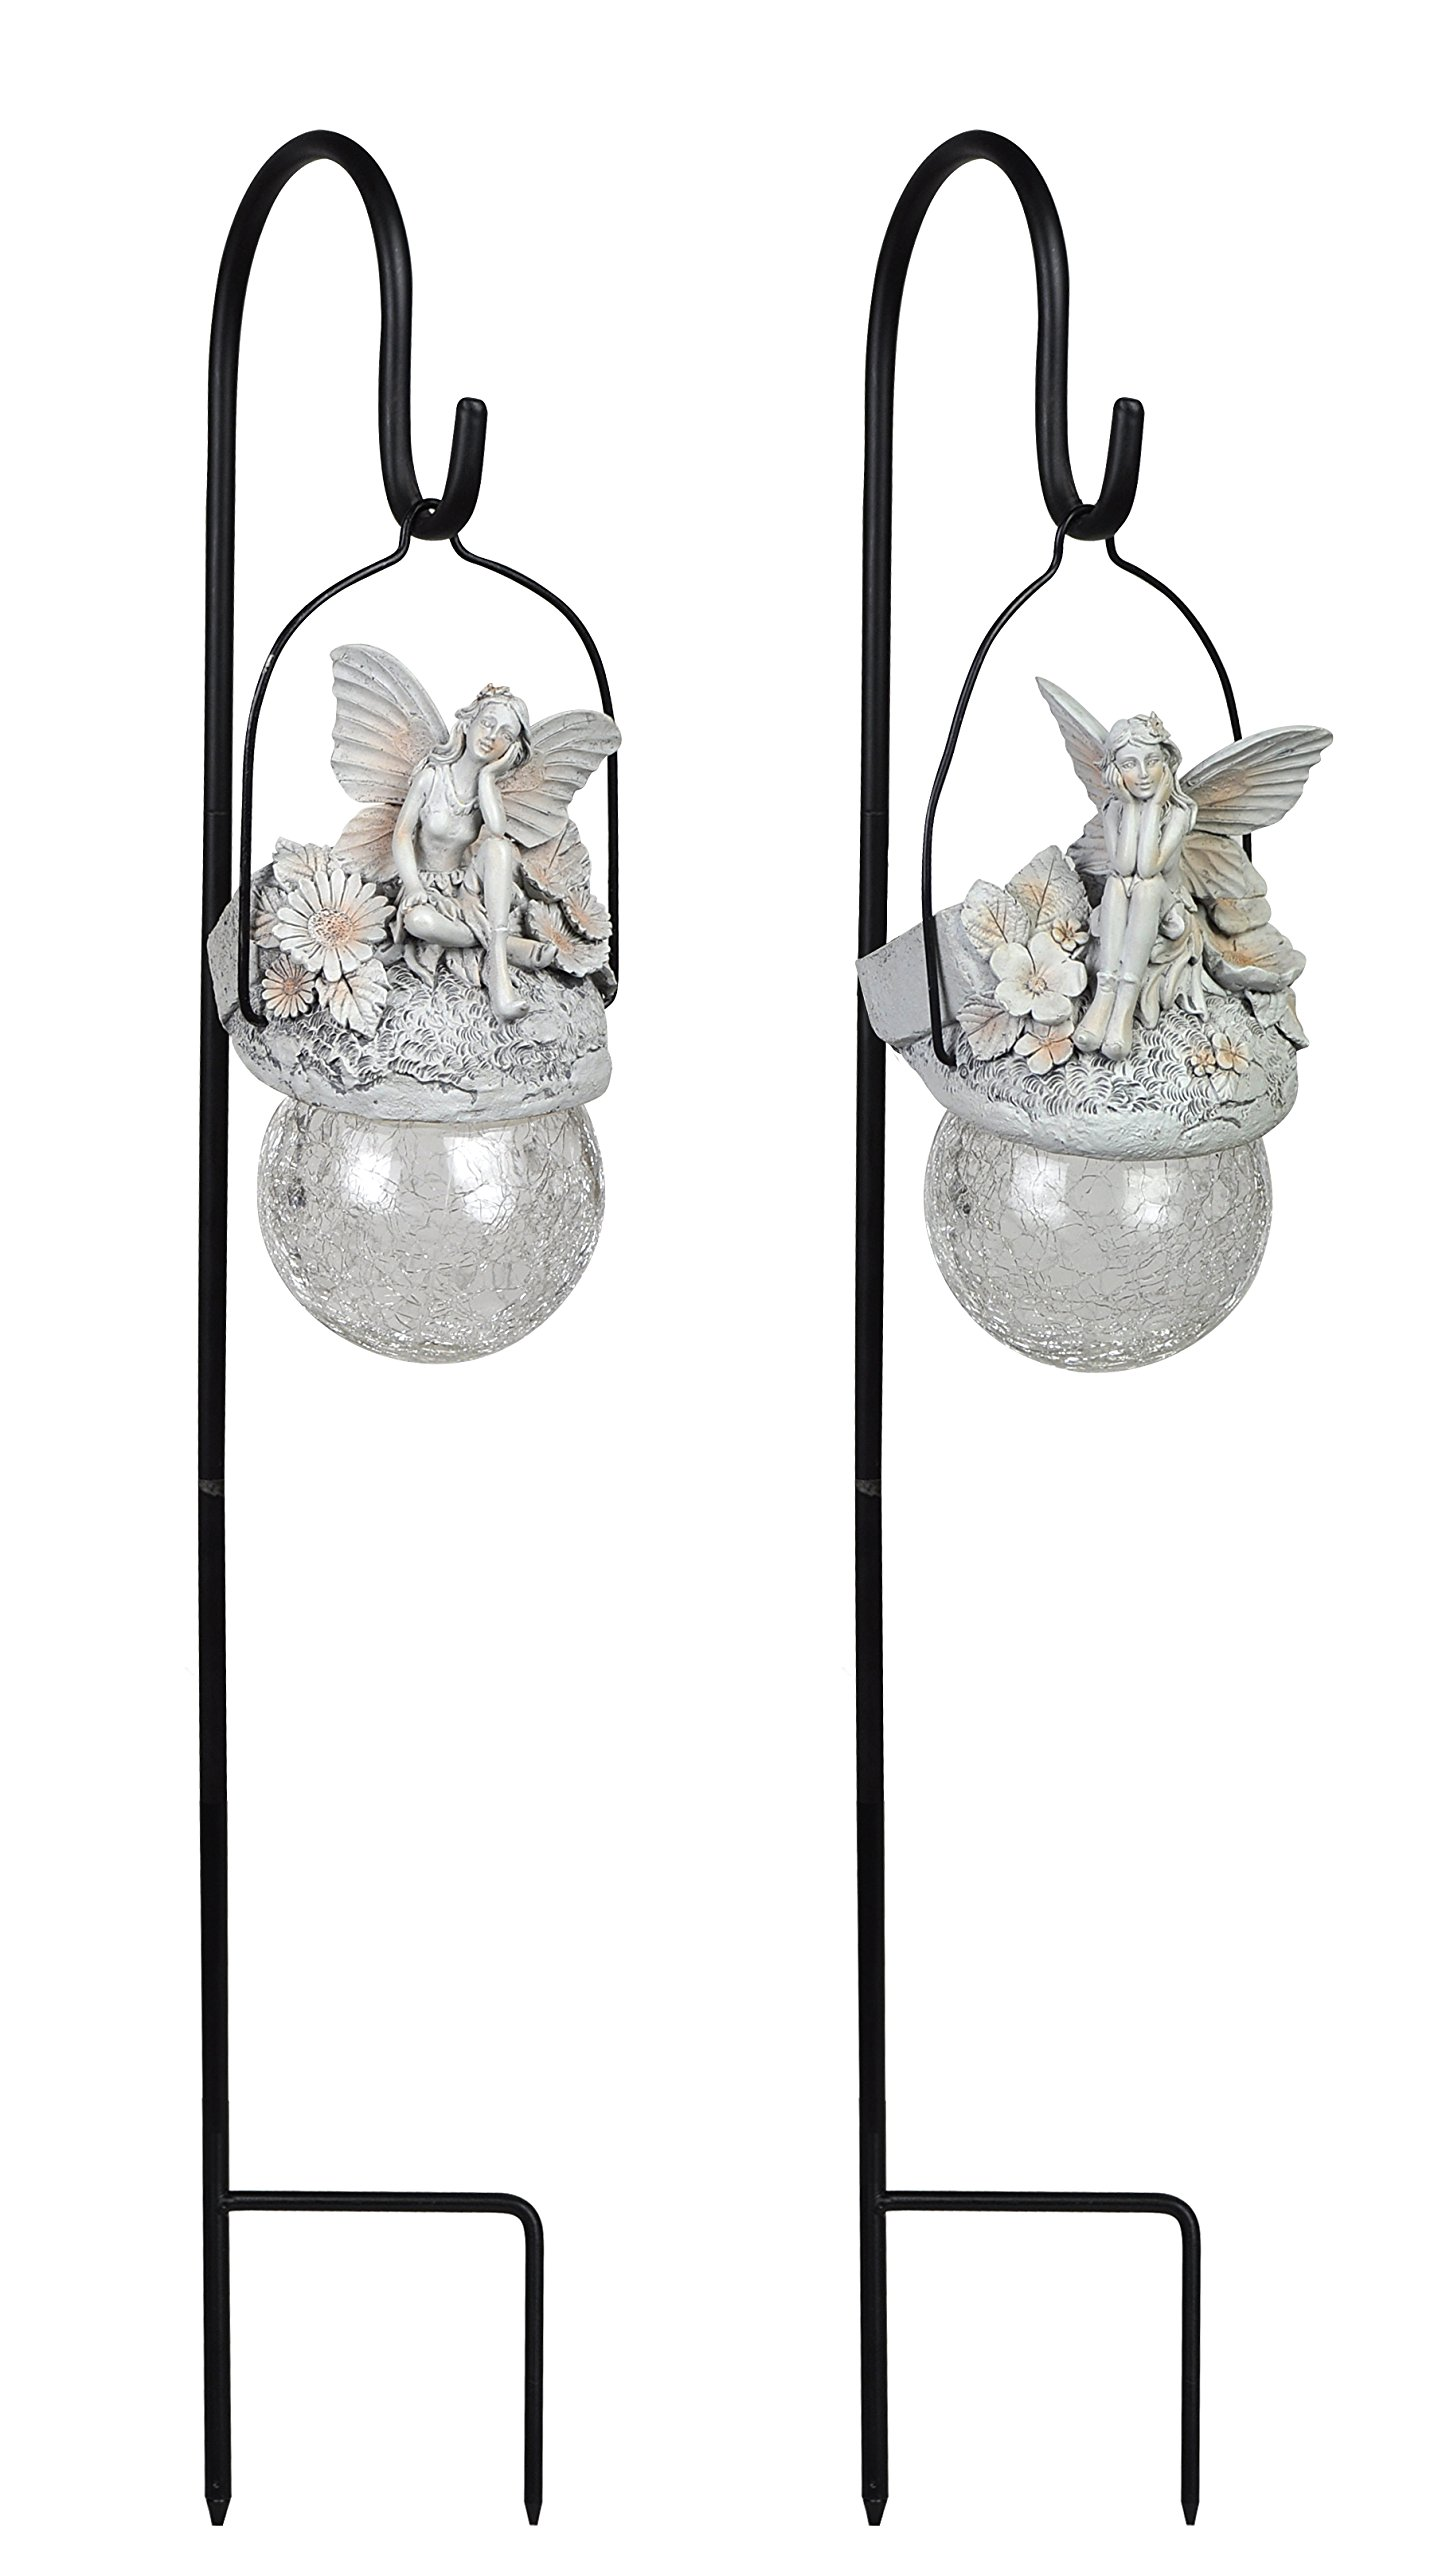 Moonrays 92417 Solar Powered LED Pixie Pendants (4 Pack)